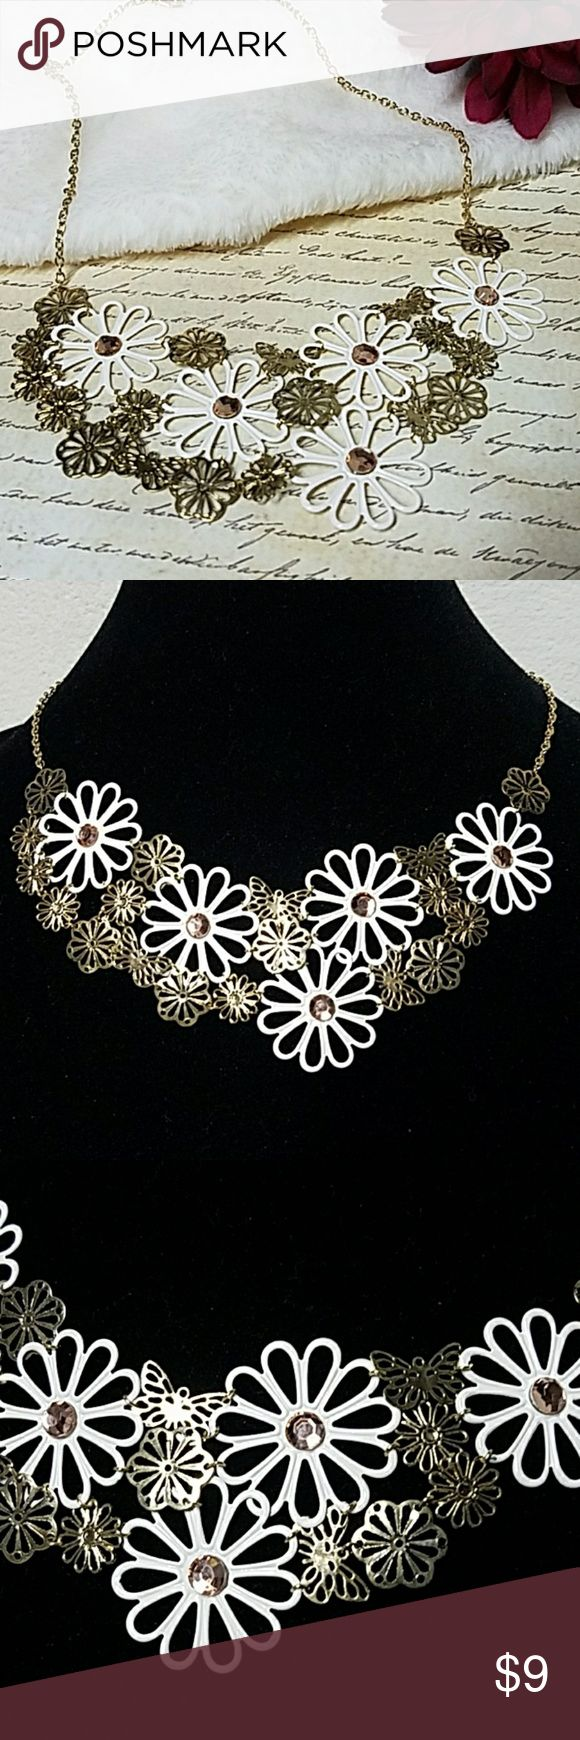 """Gold & White Flower Cluster Collar Necklace Fun & trendy necklace for the spring & summer! About 15"""" Long. Butterflies throughout. Lobster clasp closure. Item#N972 *ALL JEWELRY IS NWT/NWOT/UNUSED VINTAGE* 25% OFF BUNDLES OF 3 OR MORE ITEMS! **ALL REASONABLE OFFERS ACCEPTED** BUY WITH CONFIDENCE~TOP 10% SELLER, FAST SHIPPING,5 STAR RATING, FREE GIFT w/MOST ORDERS! Jesi's Fashionz  Jewelry Necklaces"""